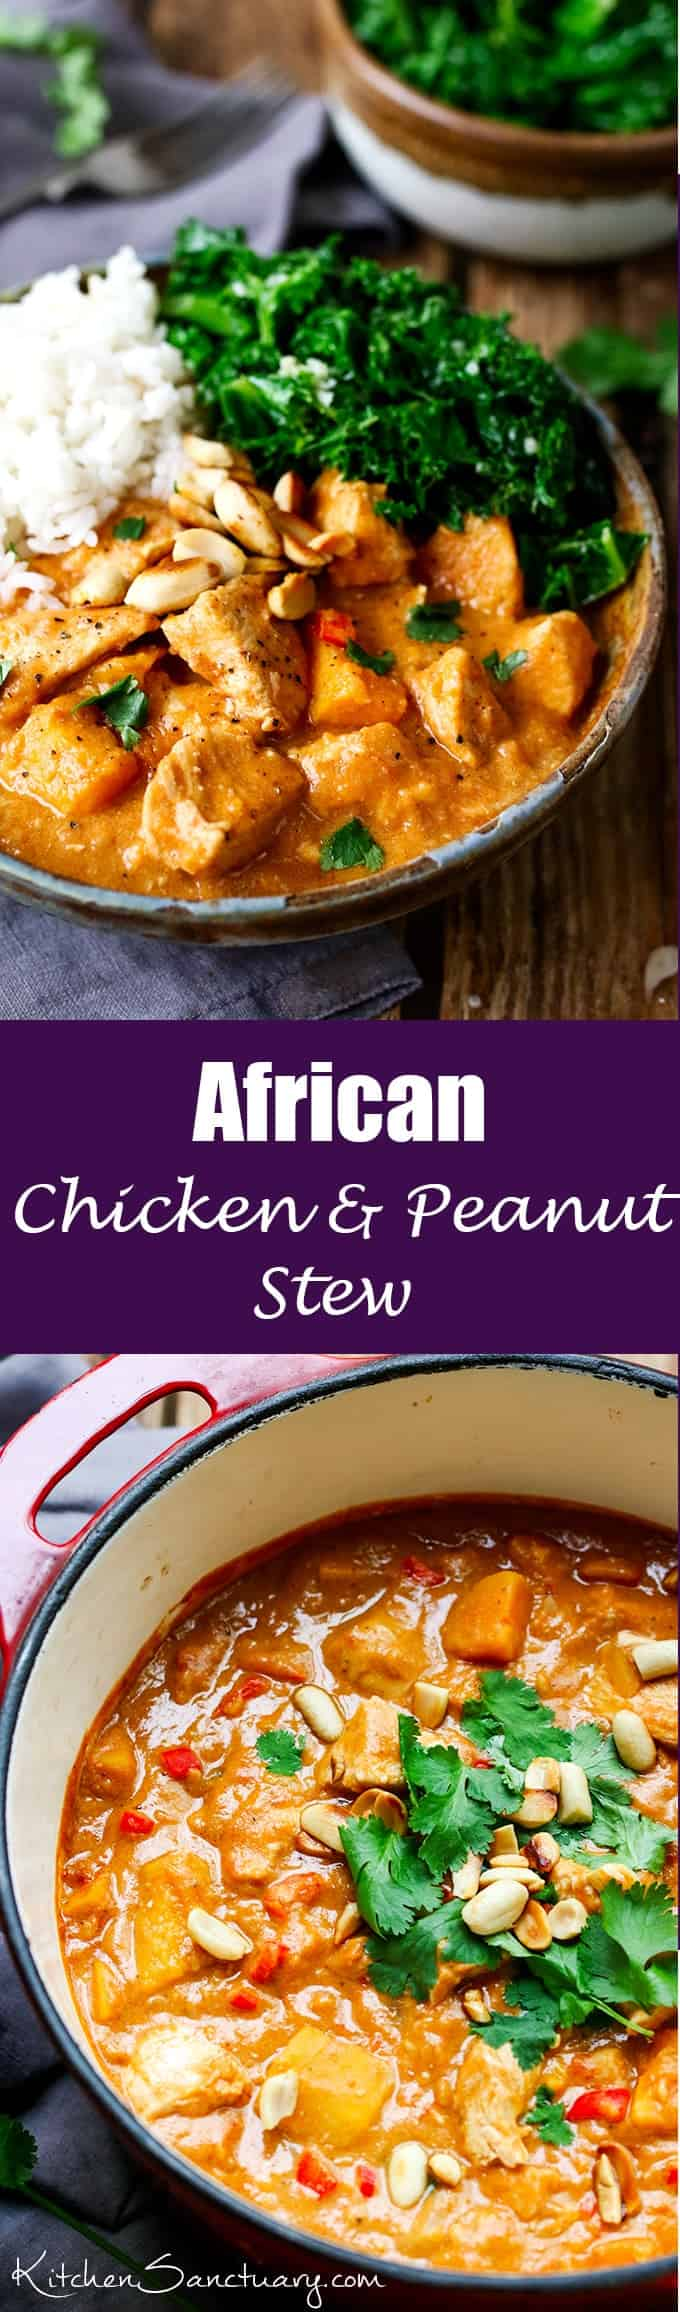 A slightly spicy, chicken and peanut stew that can be eaten on its own, or with rice.